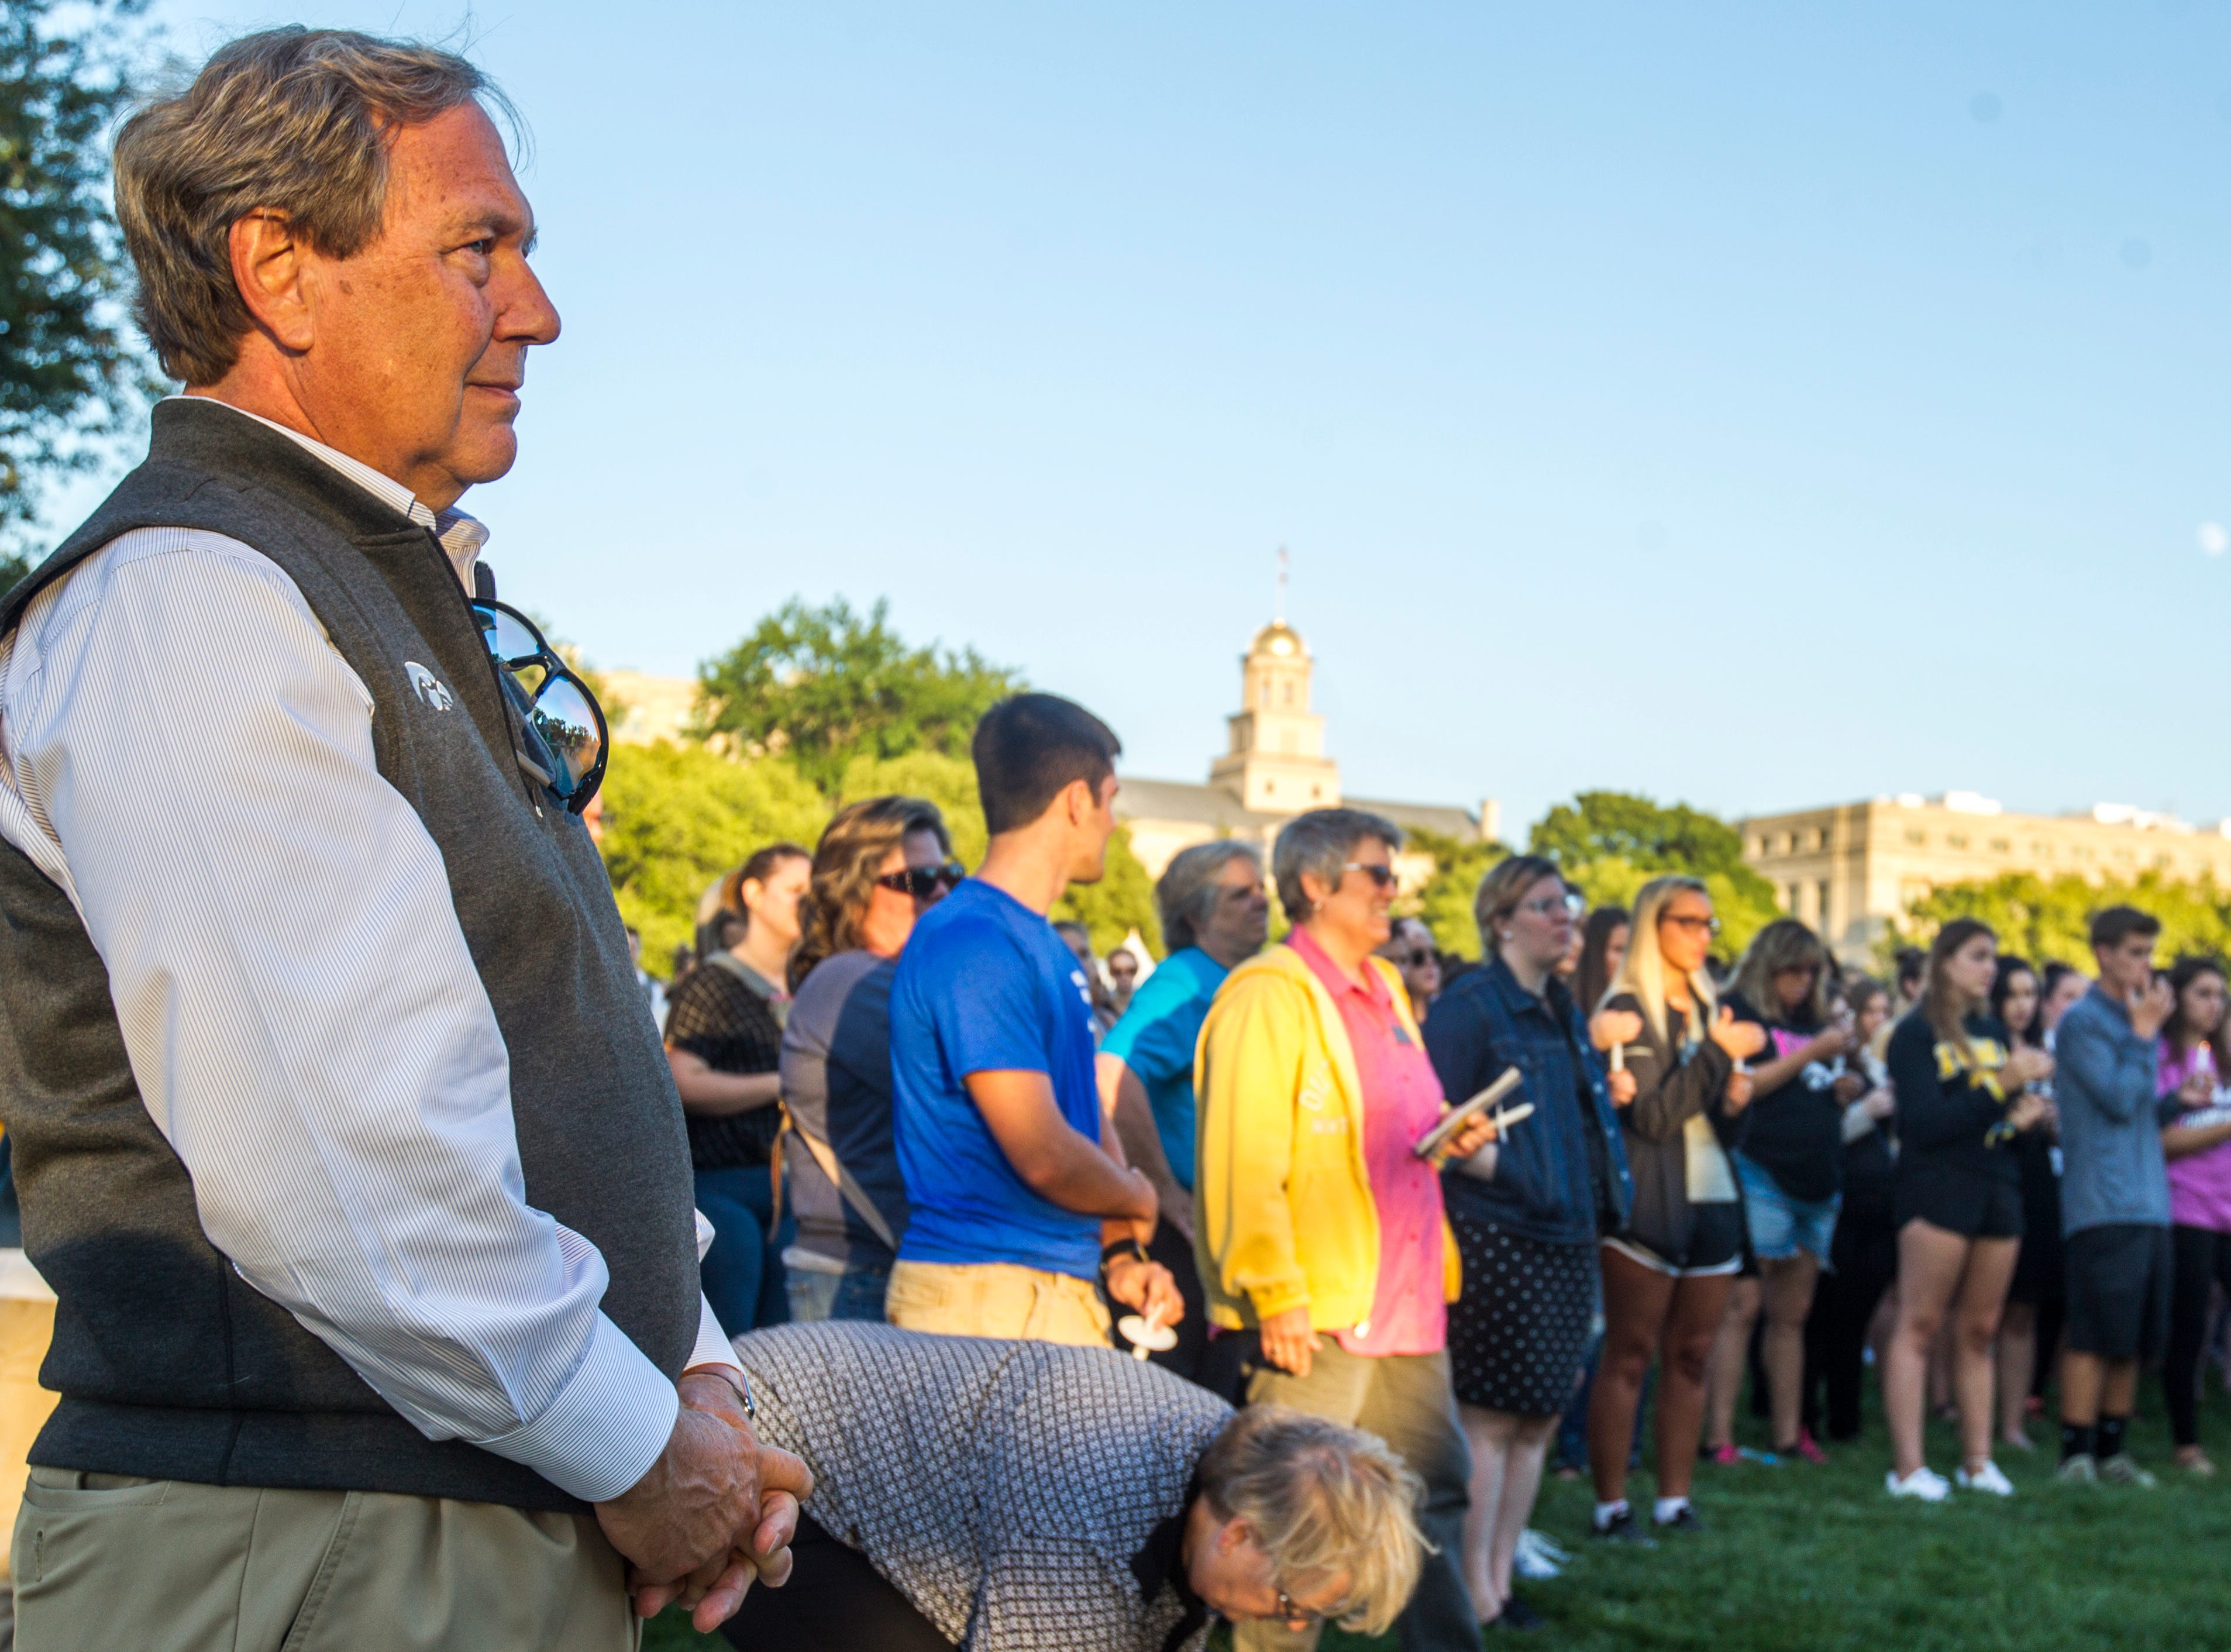 University of Iowa President J. Bruce Harreld attends a vigil for Mollie Tibbetts on Wednesday, Aug. 22, 2018, in Hubbard Park on the University of Iowa campus in Iowa City.